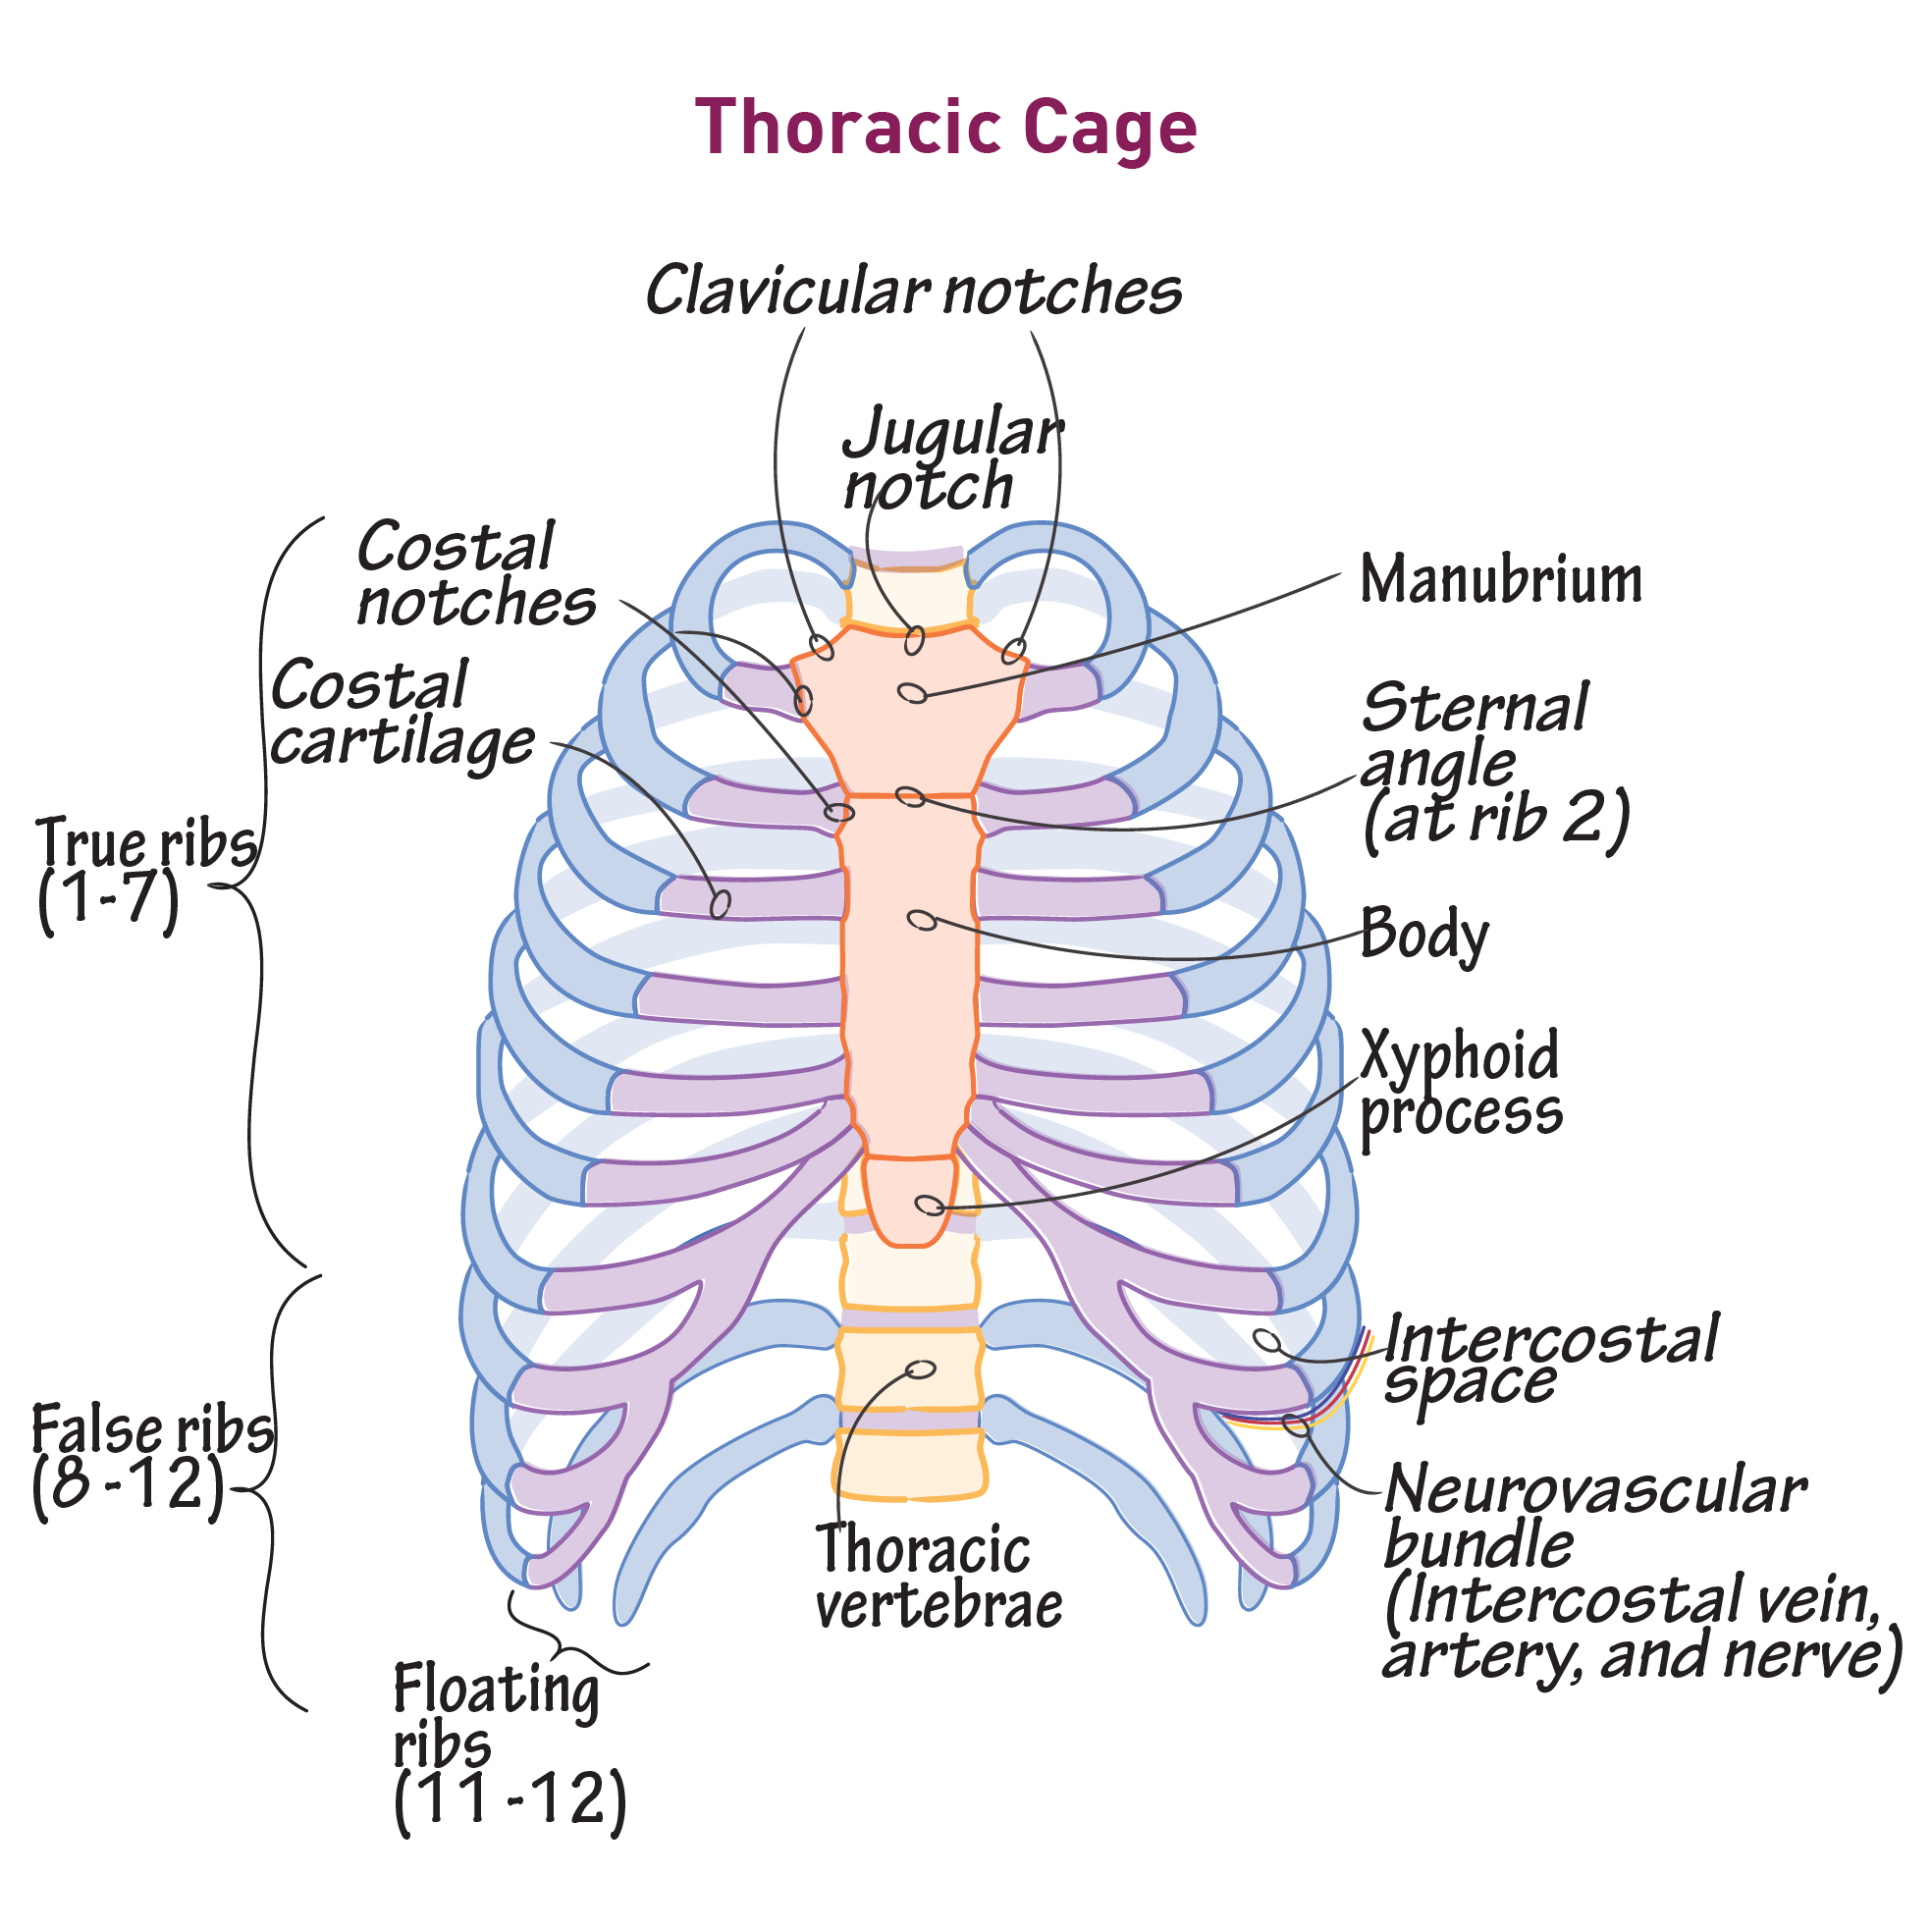 Gross Anatomy Glossary: Thoracic Cage | Draw It to Know It